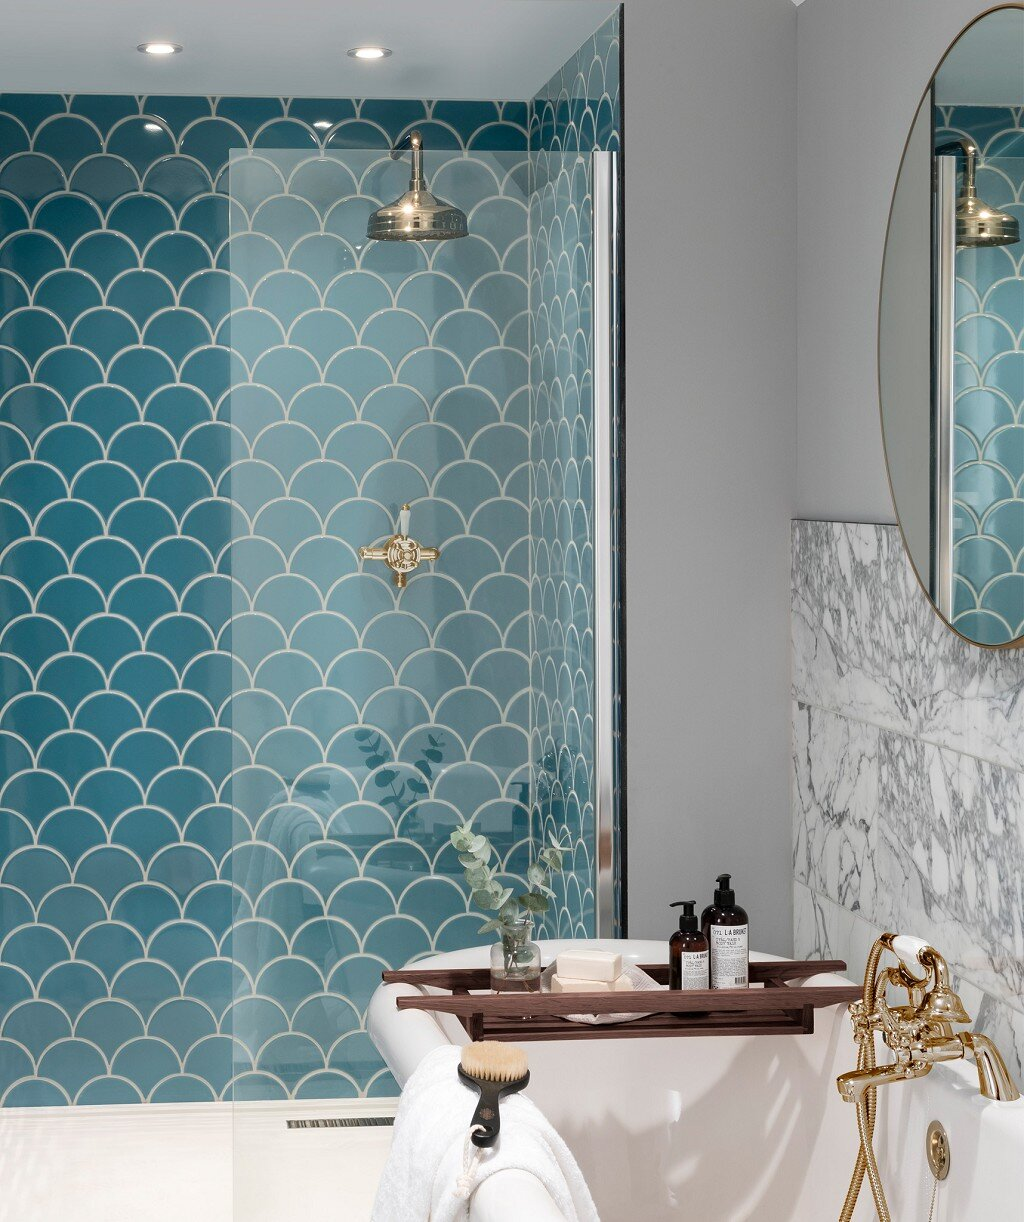 Nordic Blue  in the bathroom. Credit:  Topps Tiles